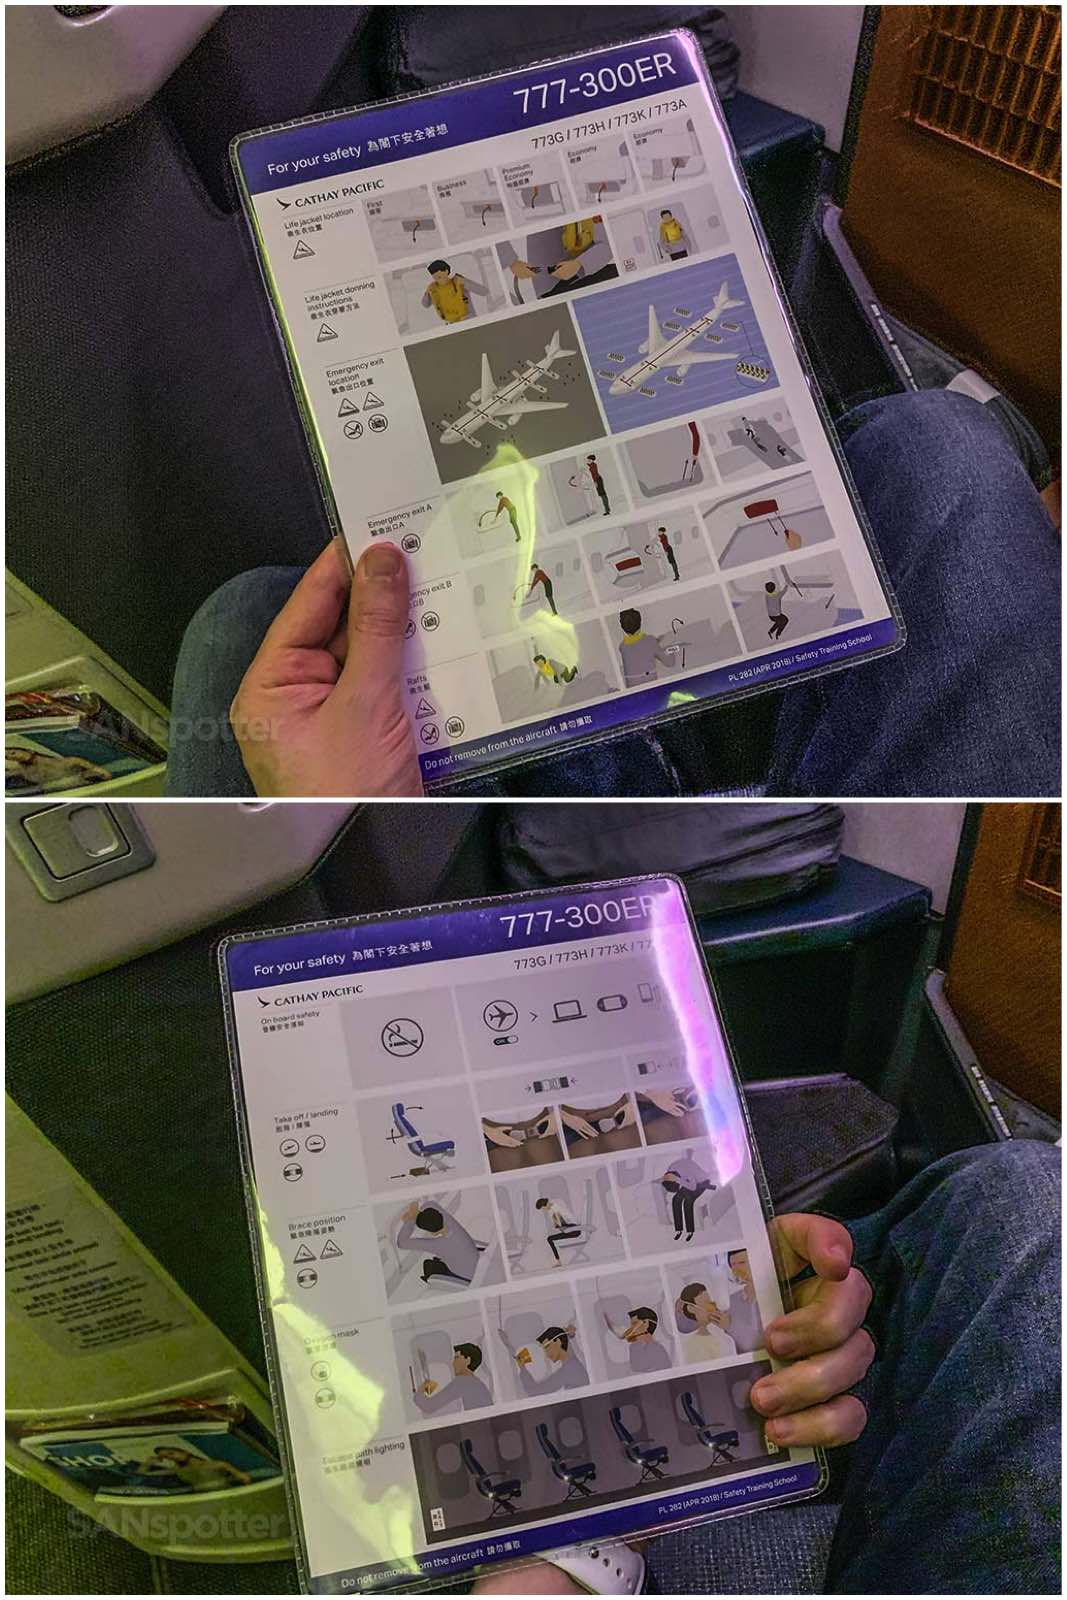 Cathay Pacific 777-300er safety card